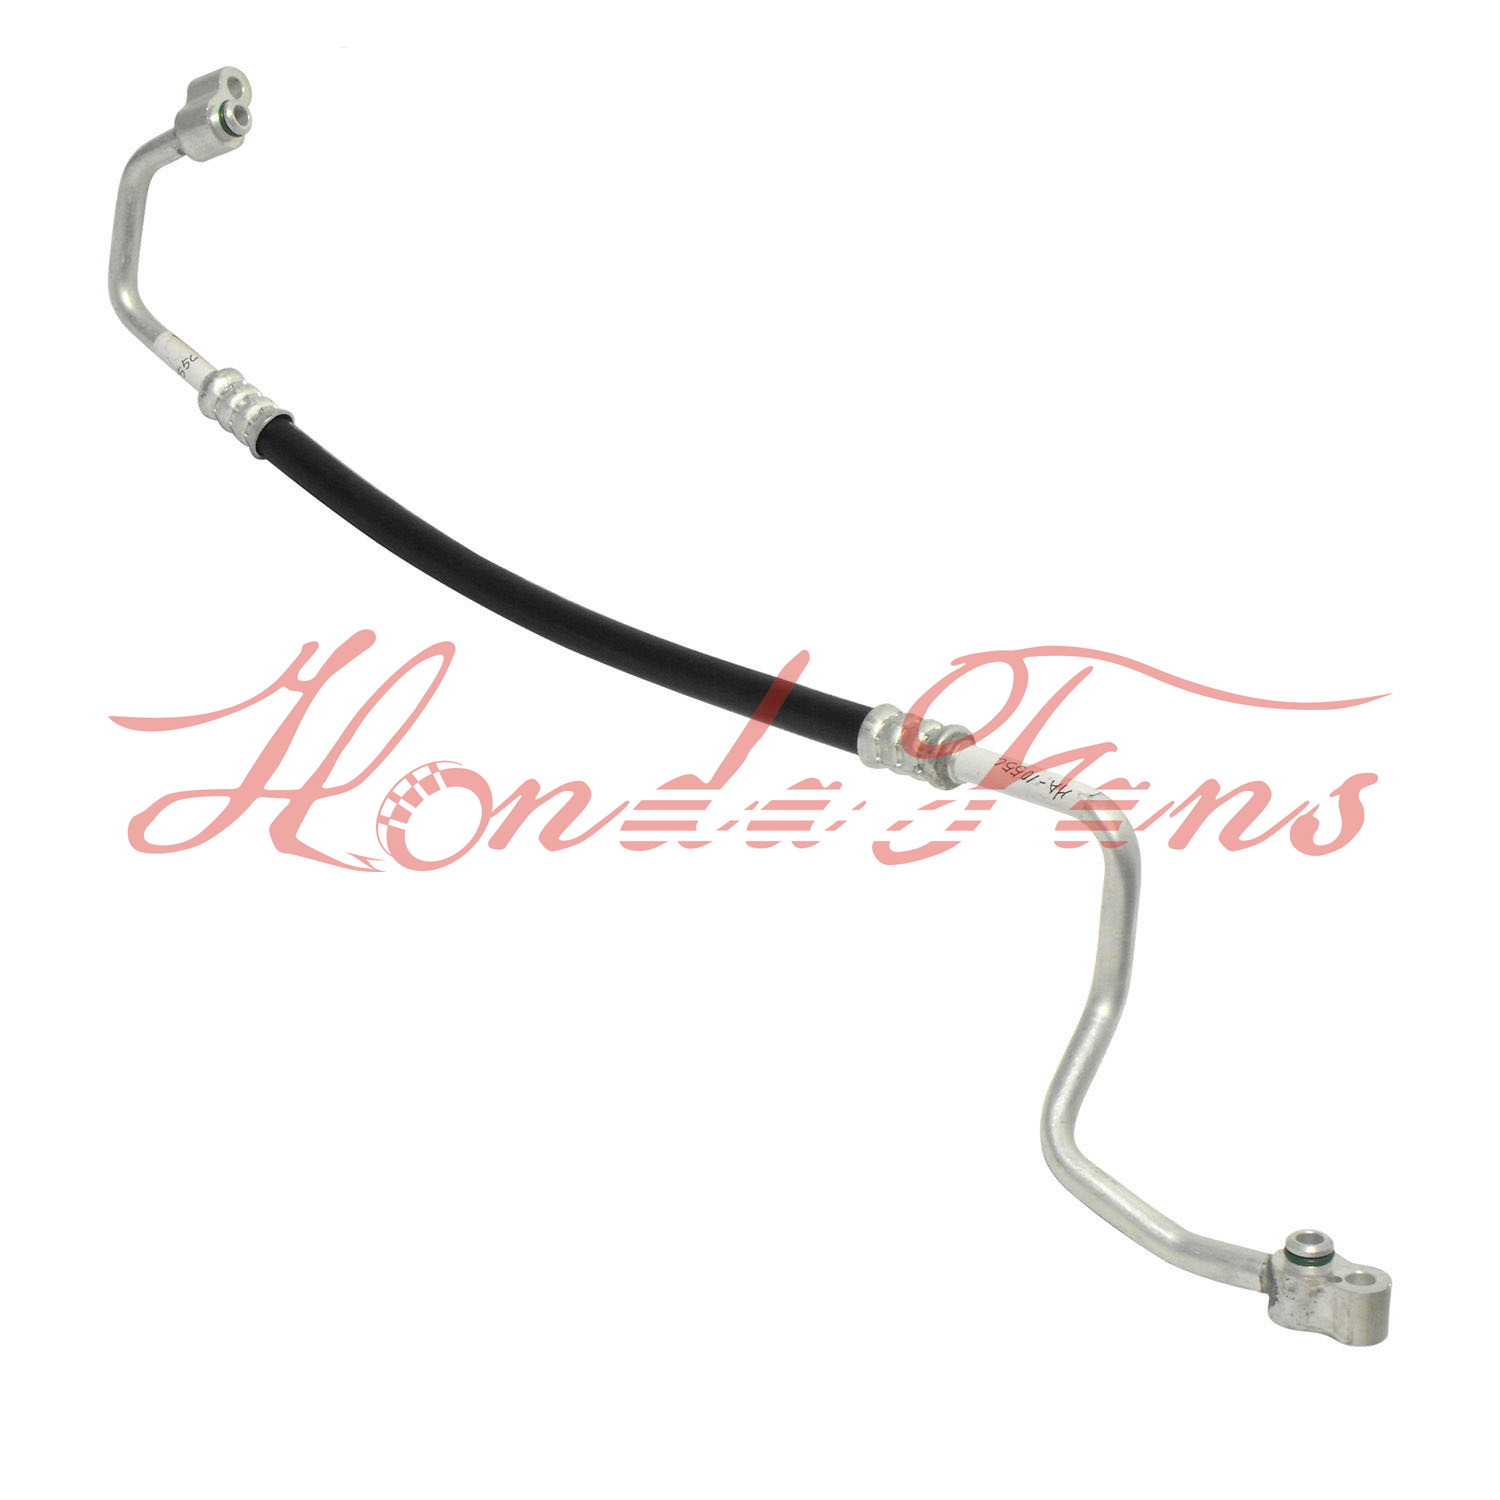 New A//C Refrigerant Discharge Hose Assembly For 98-02 Honda Accord 80315-S84-A01